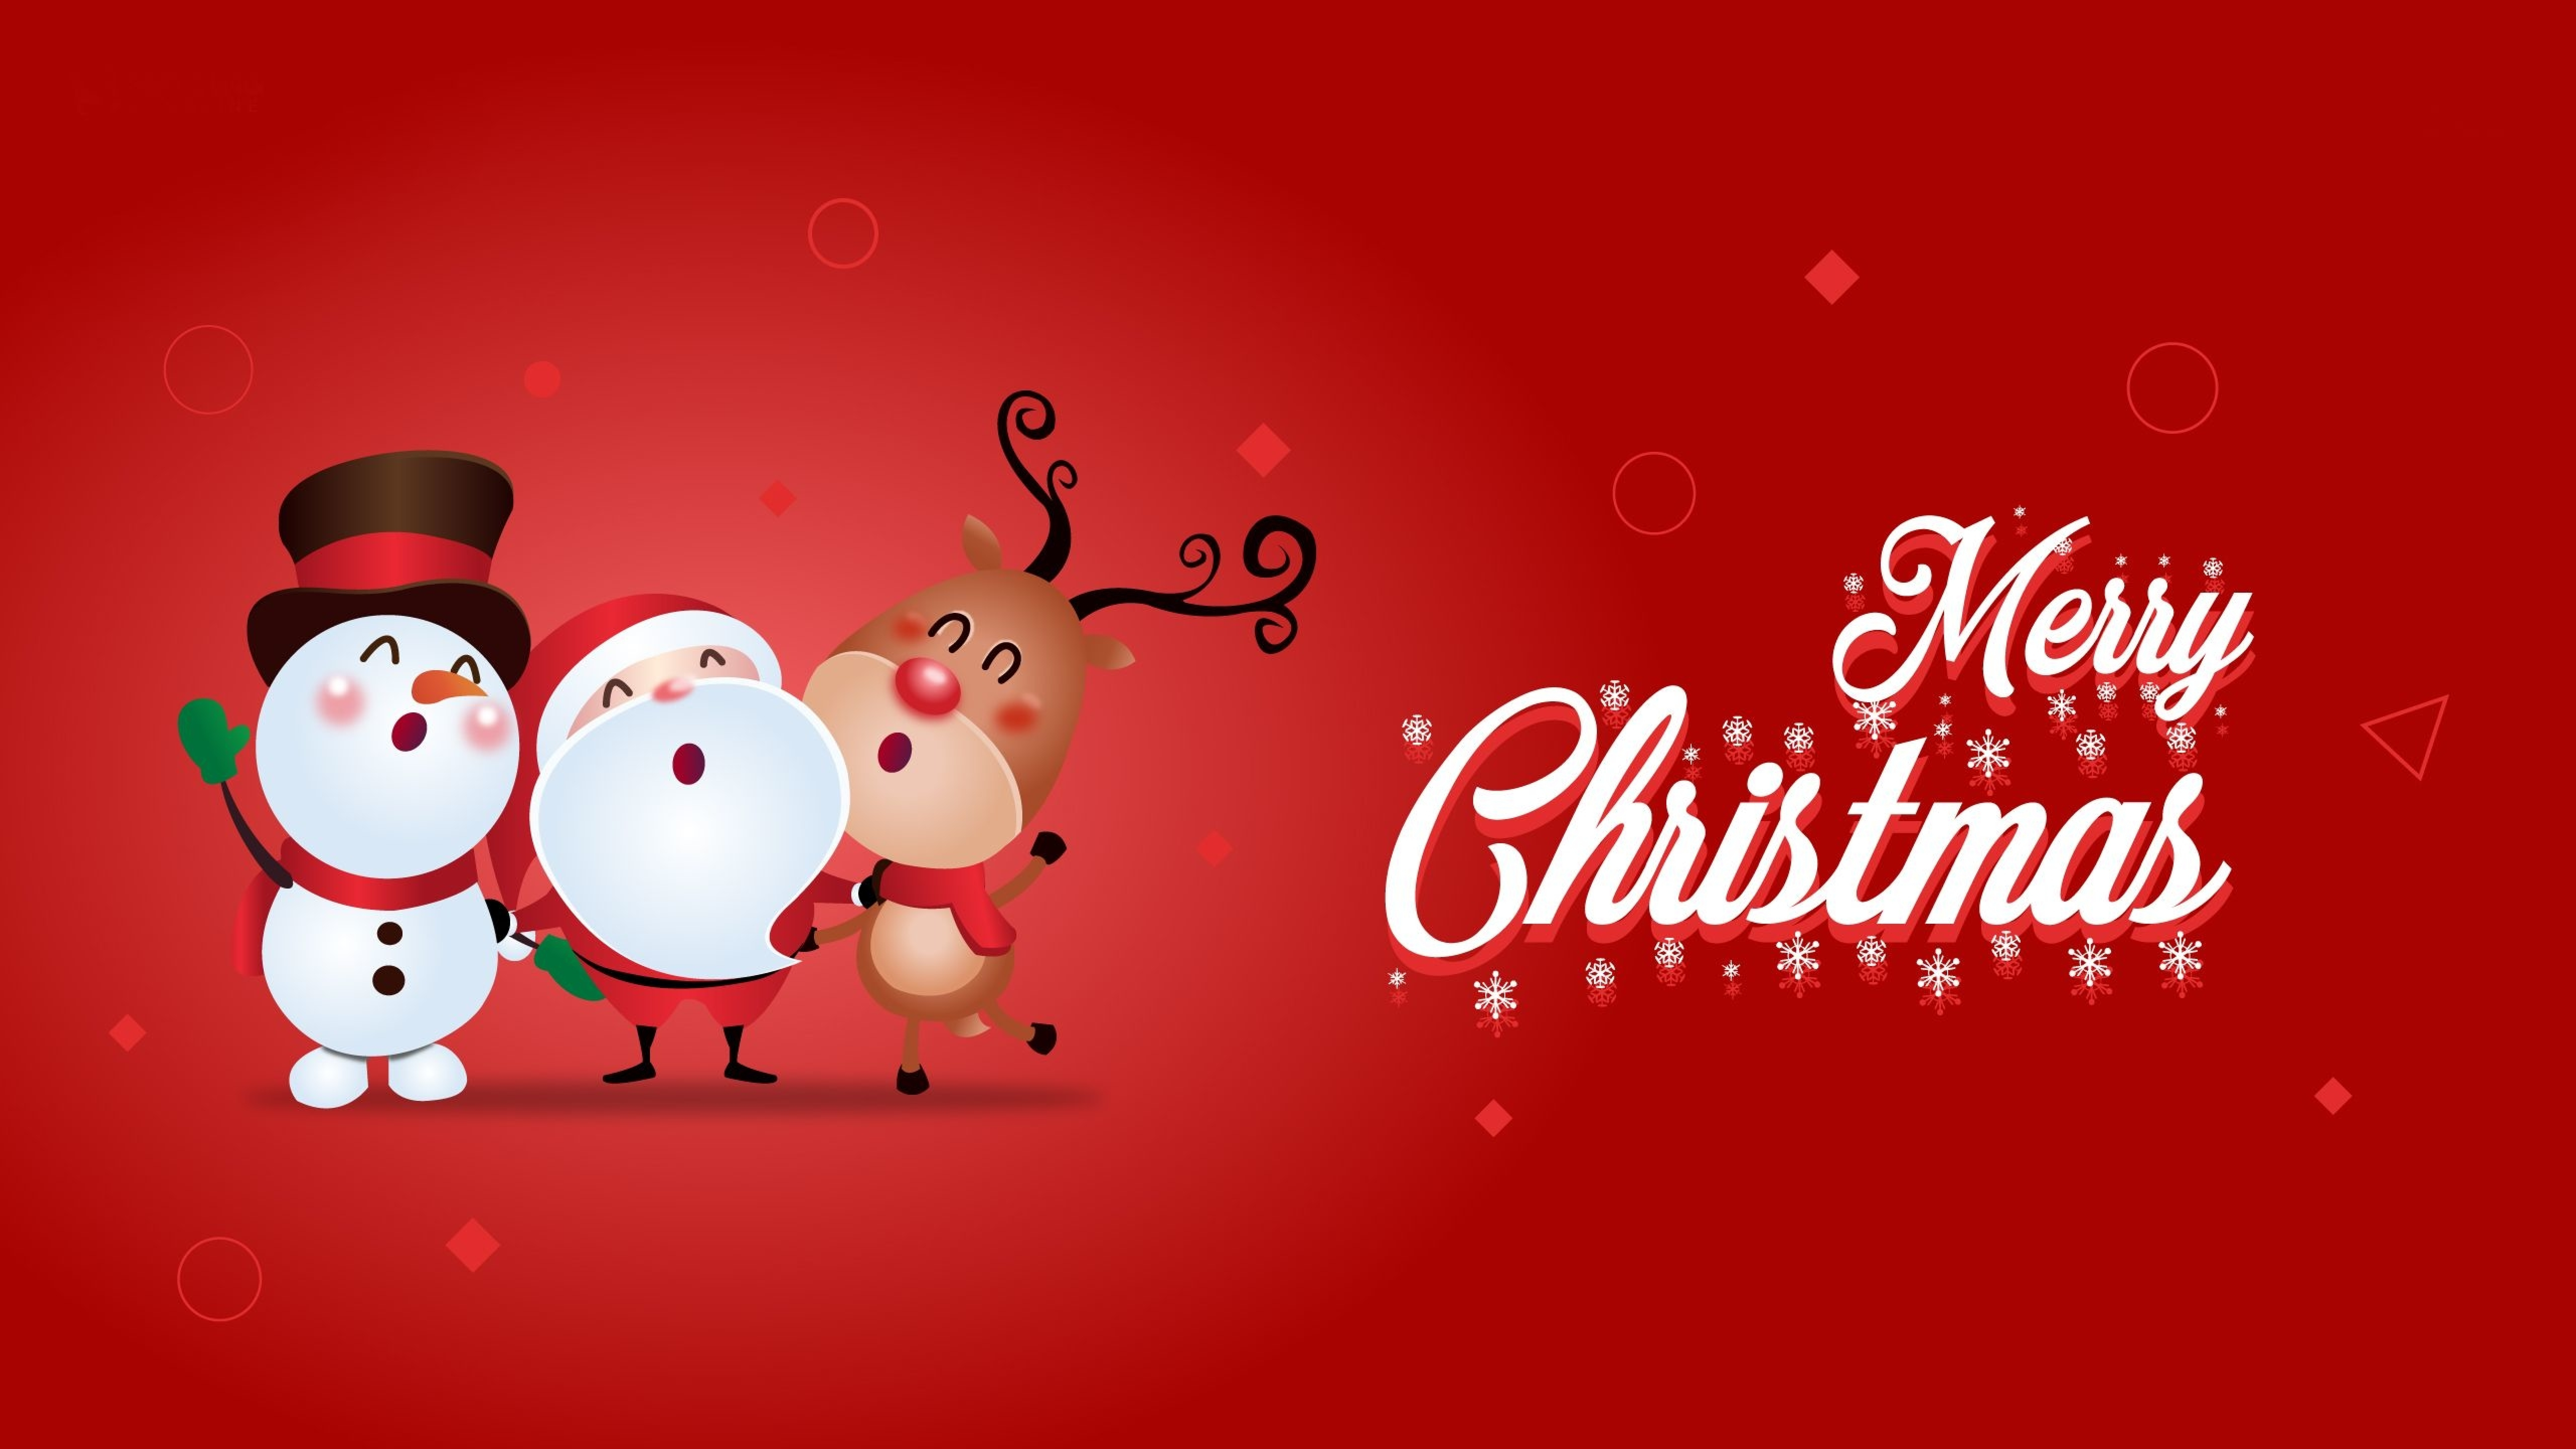 7680x4320 Merry Christmas Santa 2020 8k Wallpaper Hd Holidays 4k Wallpapers Images Photos And Background Wallpapers Den